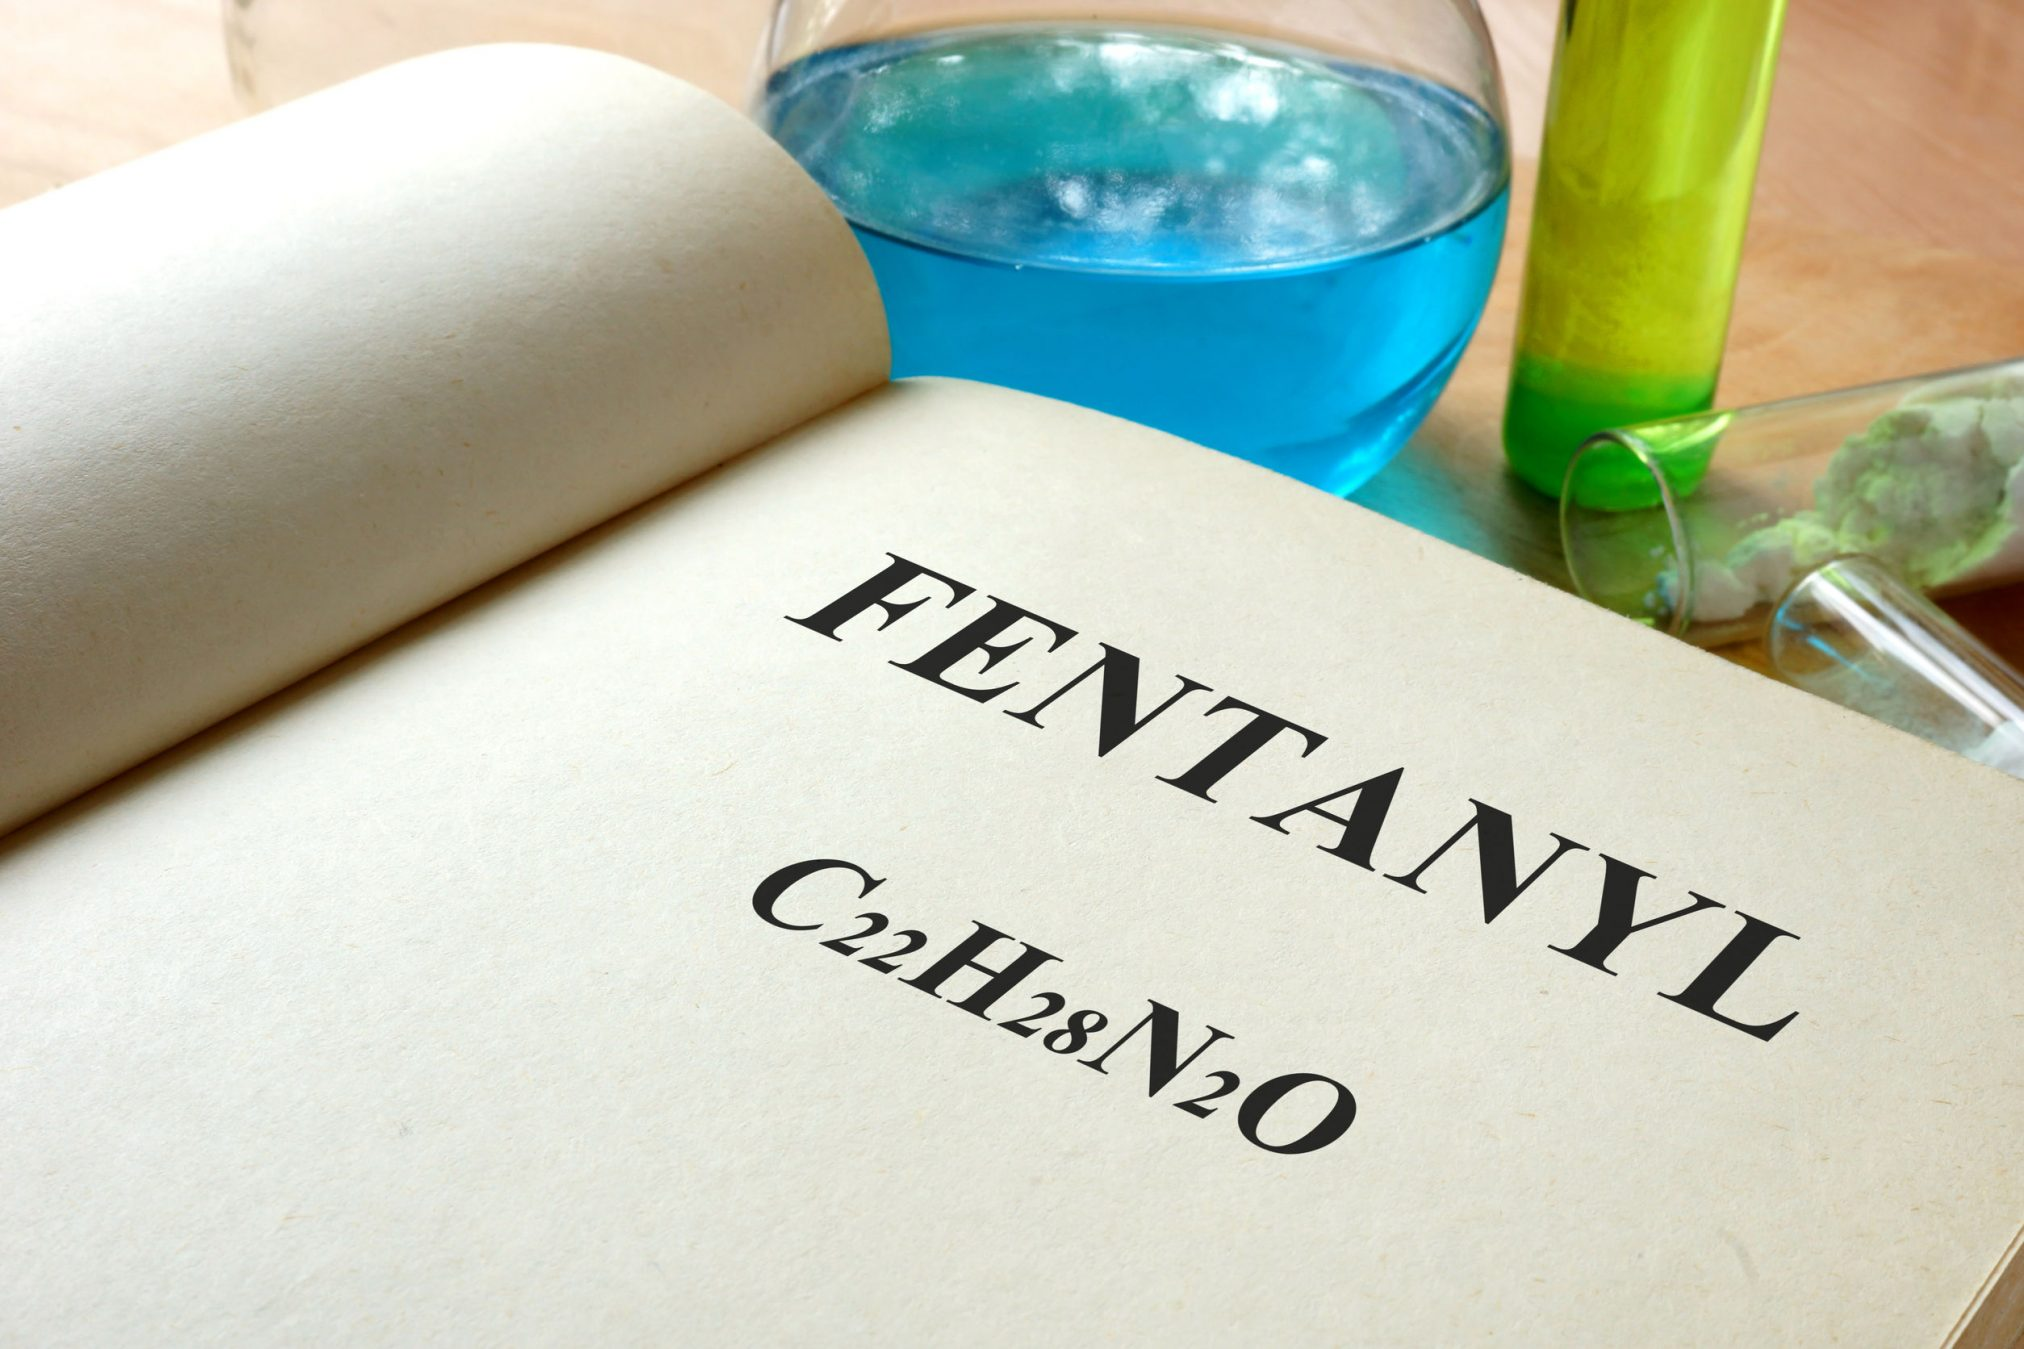 44171081 - book with fentanyl and test tubes on a table.